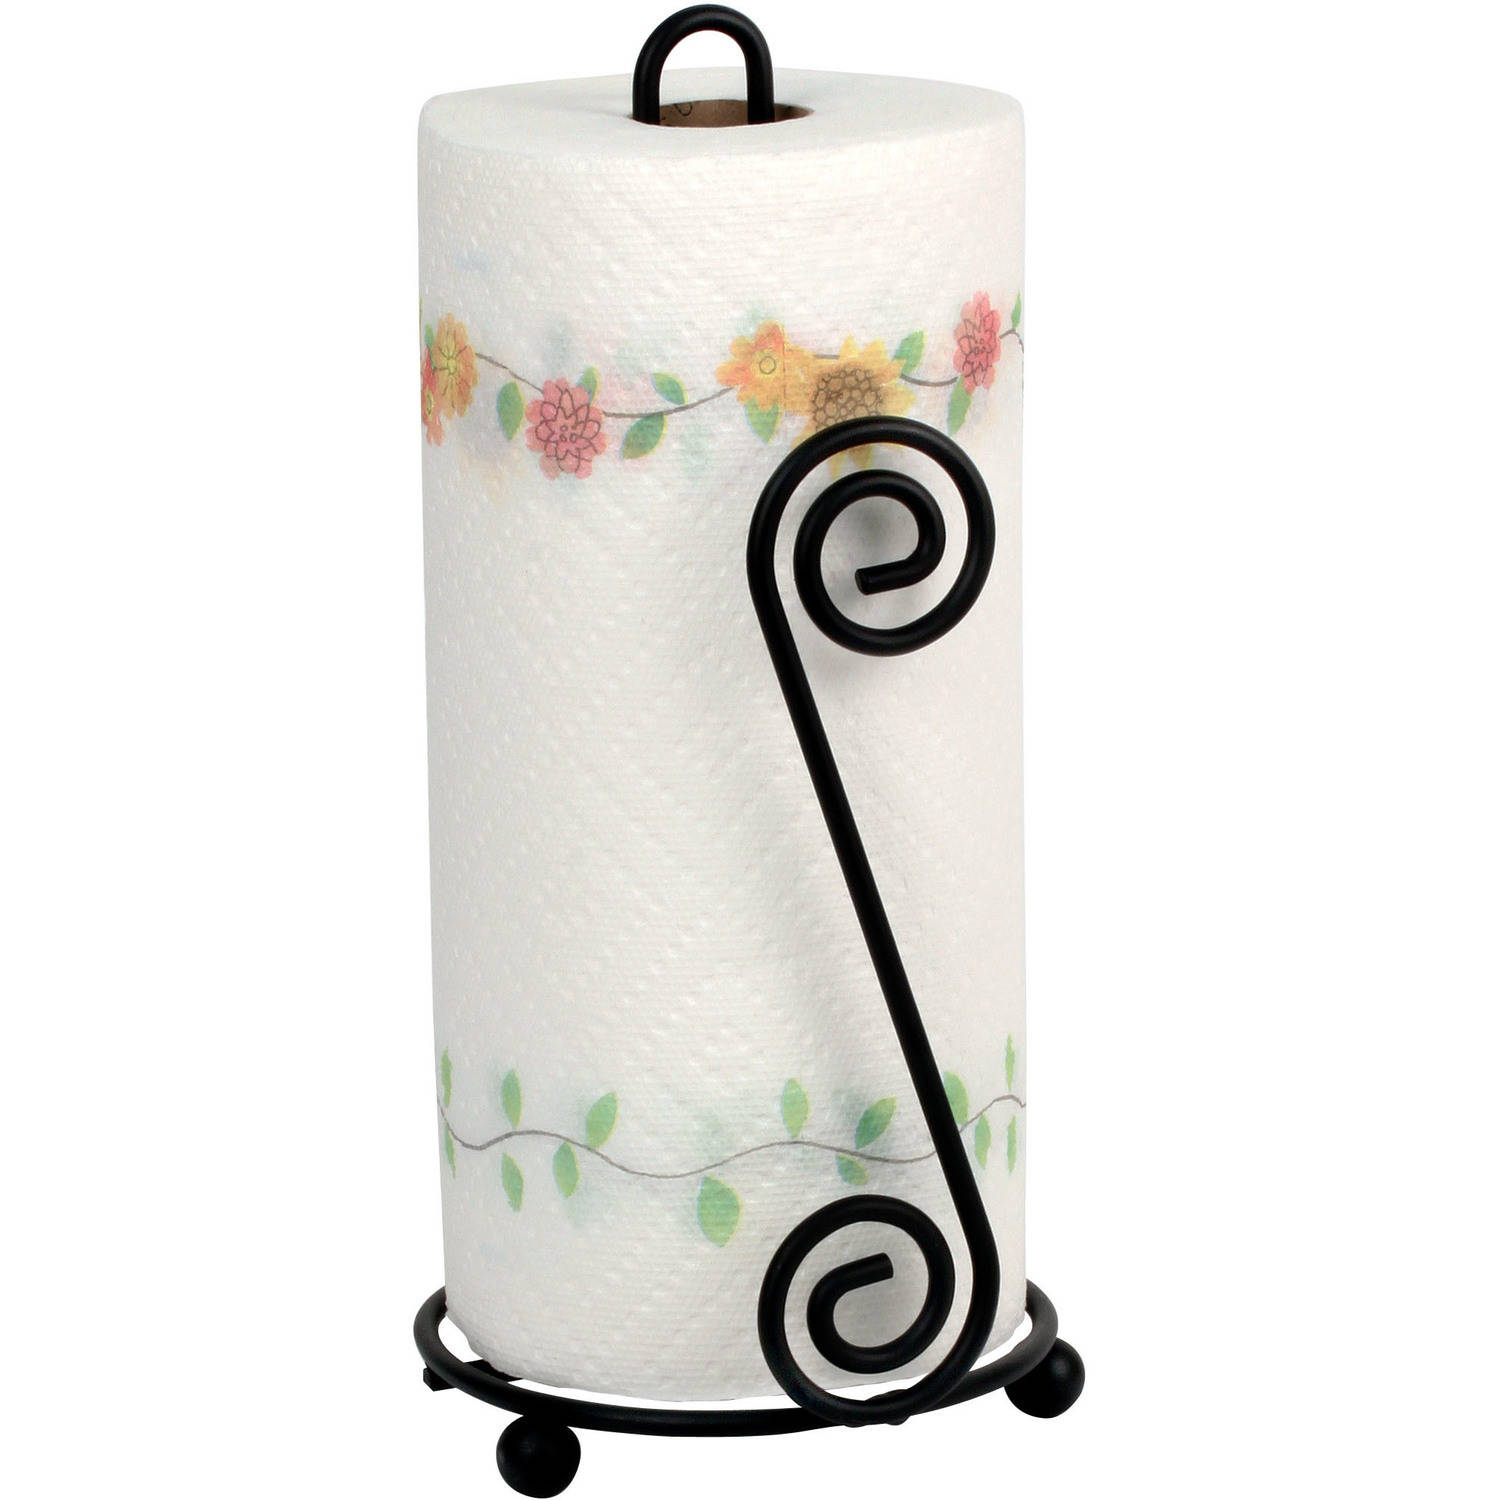 Spectrum Scroll Paper Towel Holder, Black